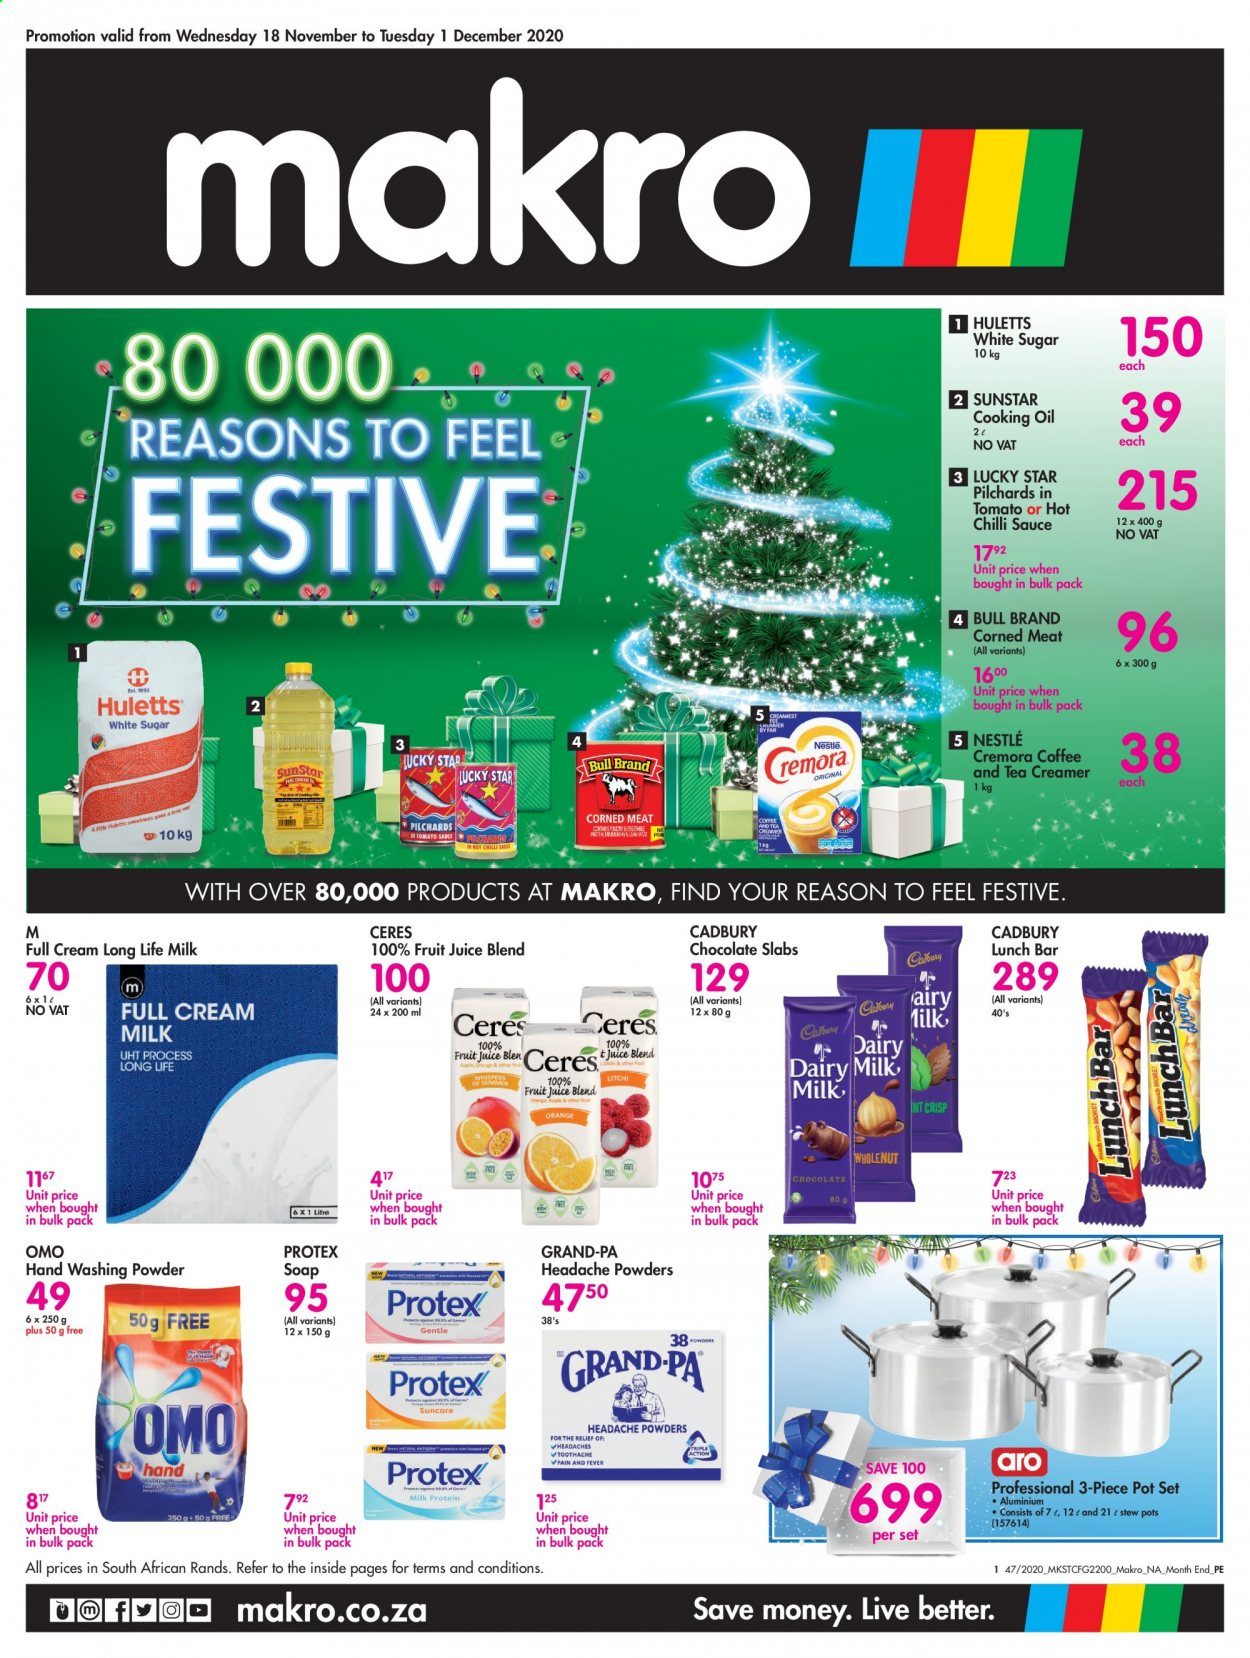 Makro catalogue  - 11.18.2020 - 12.01.2020 - Sales products - coffee, milk, Nestlé, sugar, tea, pot, chocolate, creamer, fruit juice, pilchards, Cremora, juice, sauce, Omo, chocolate slabs, corned meat, headache powders, oil, Meat, washing powder, long life milk. Page 1.